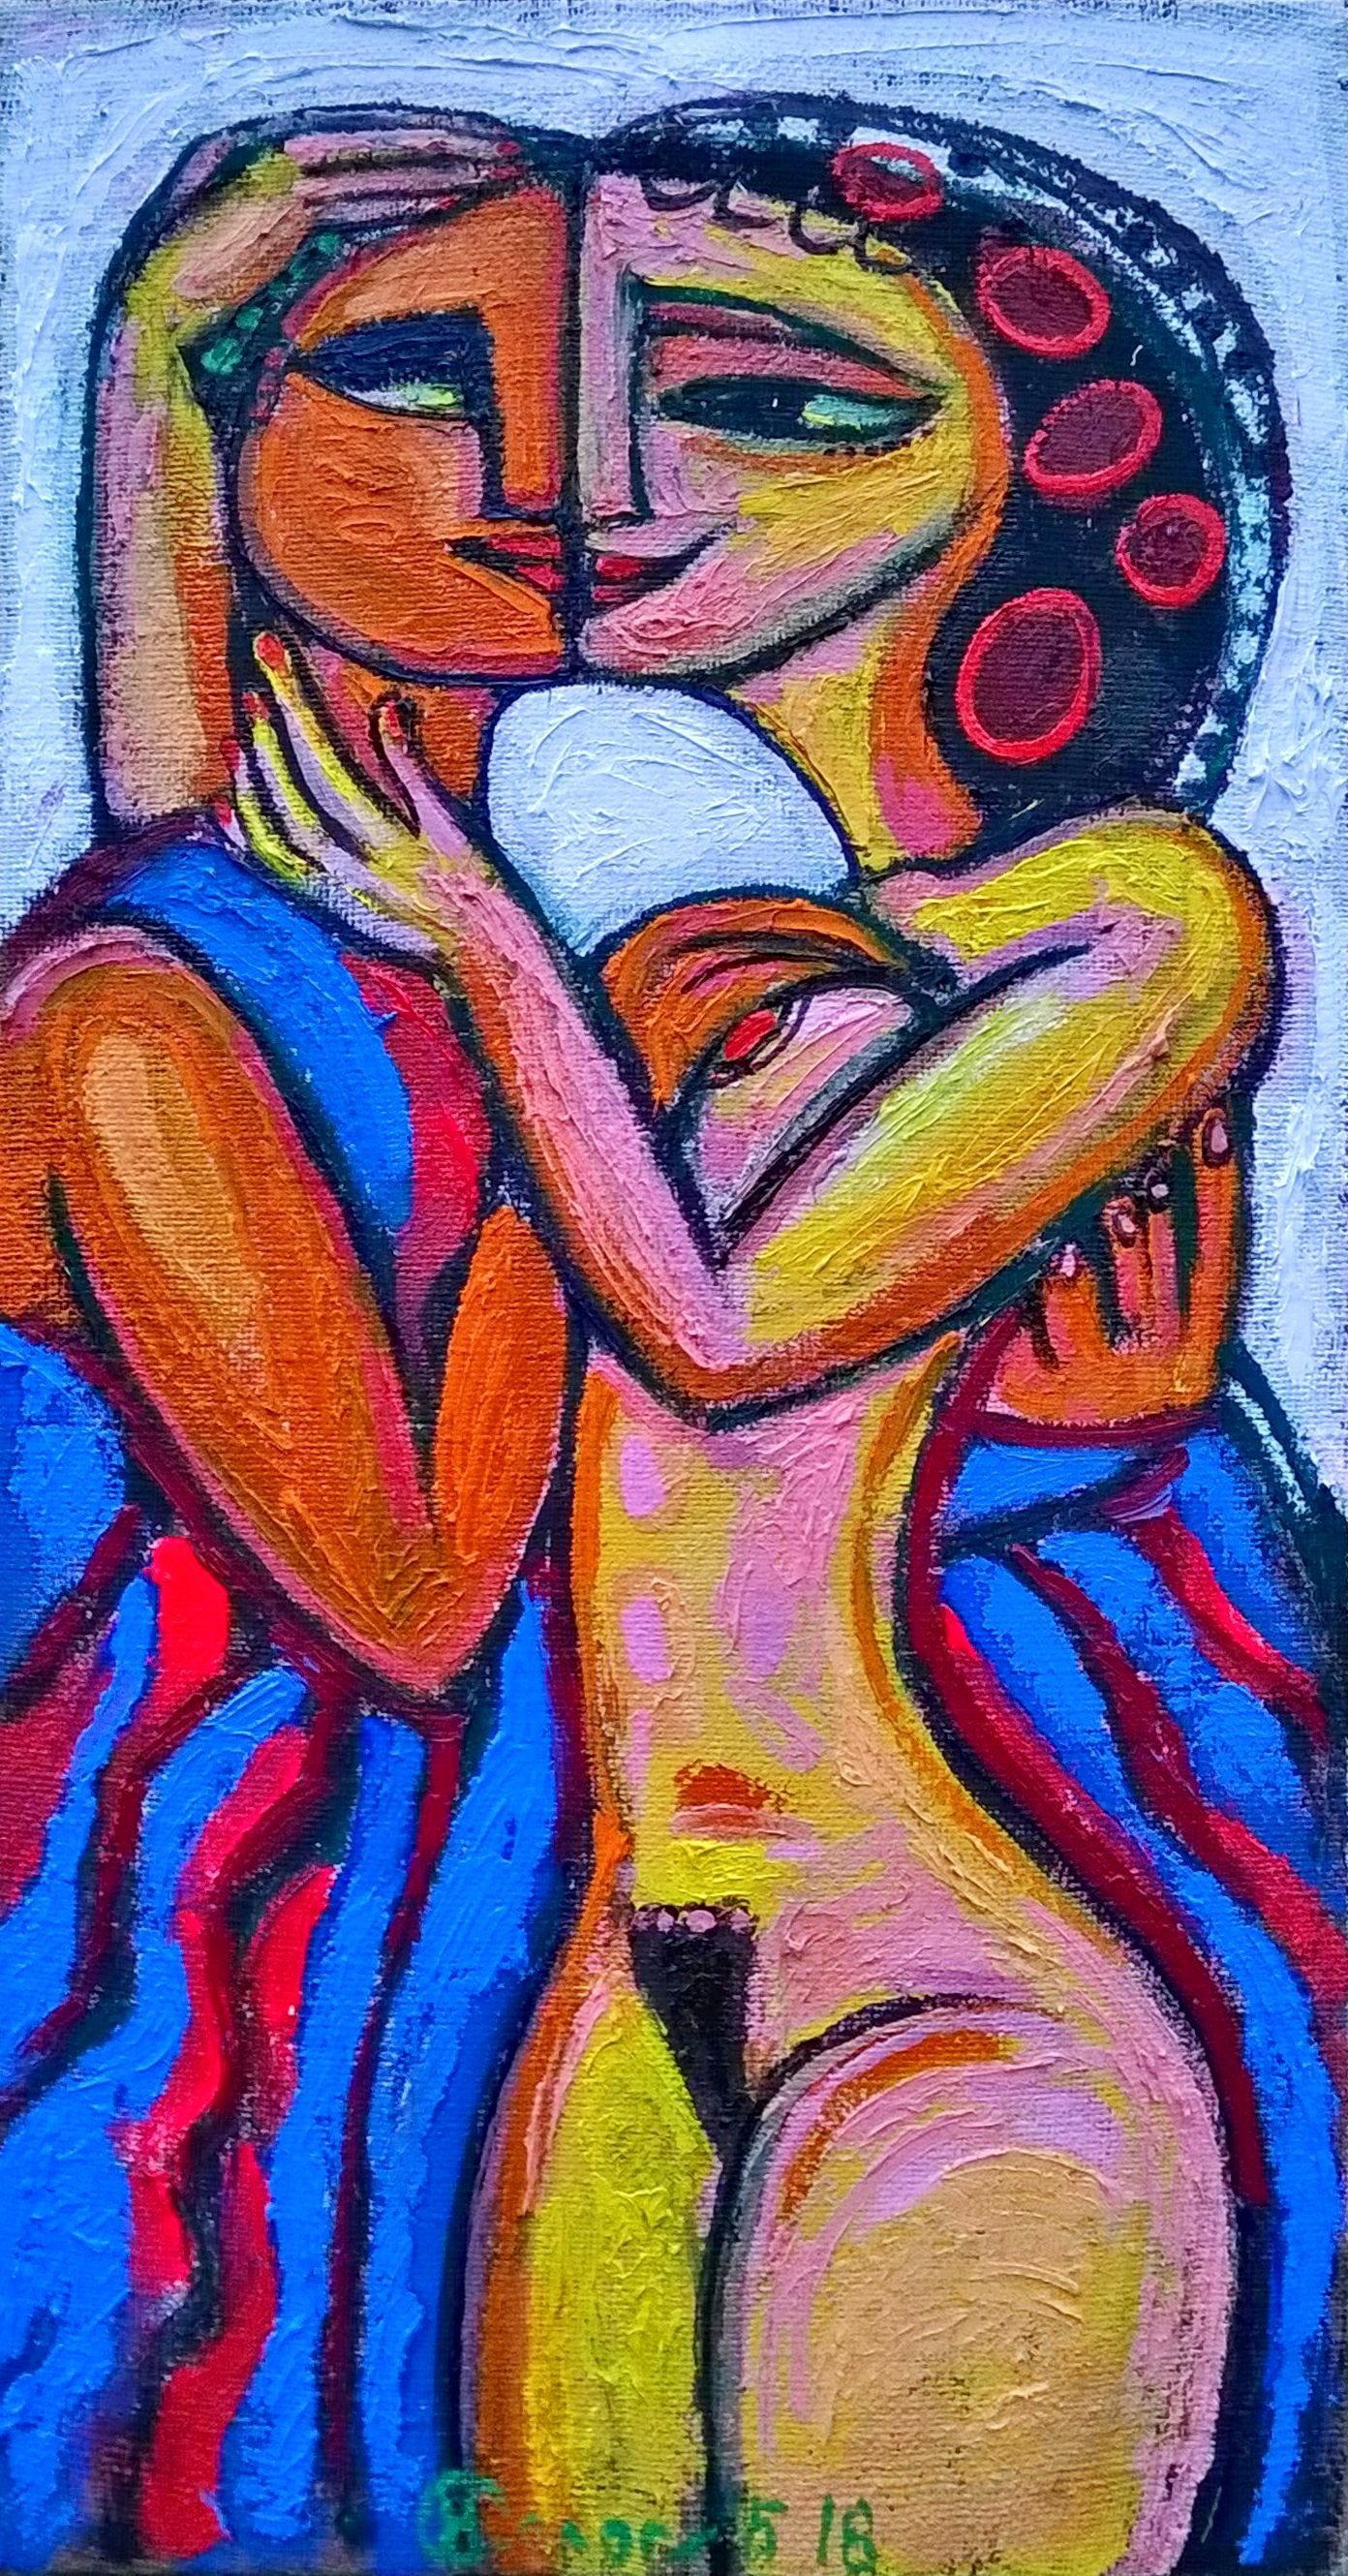 Superbe Sensual Art Couple Oil Painting Canvas Love Oil Painting ORIGINAL Bright  Oil Artwork Gift For Wedding